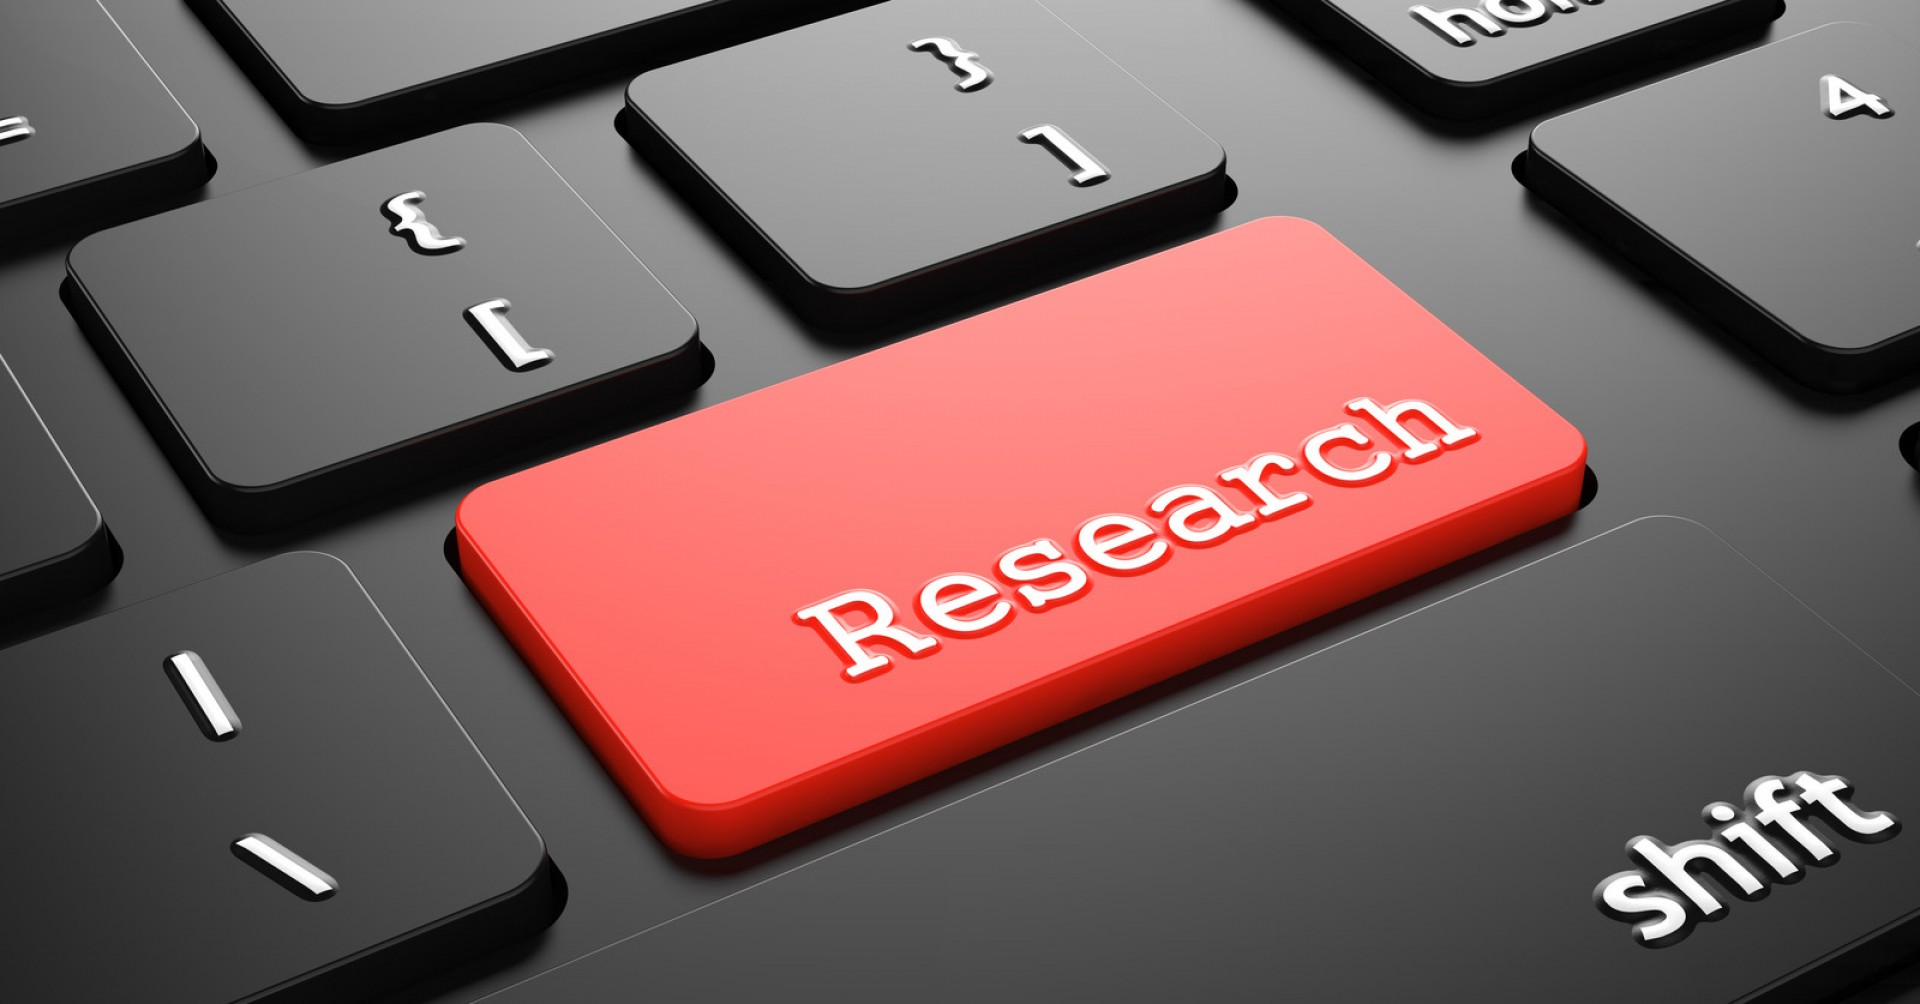 007 Researchkey Research Paper Best Site To Download Papers Unbelievable Free How From Ieee Google Scholar 1920